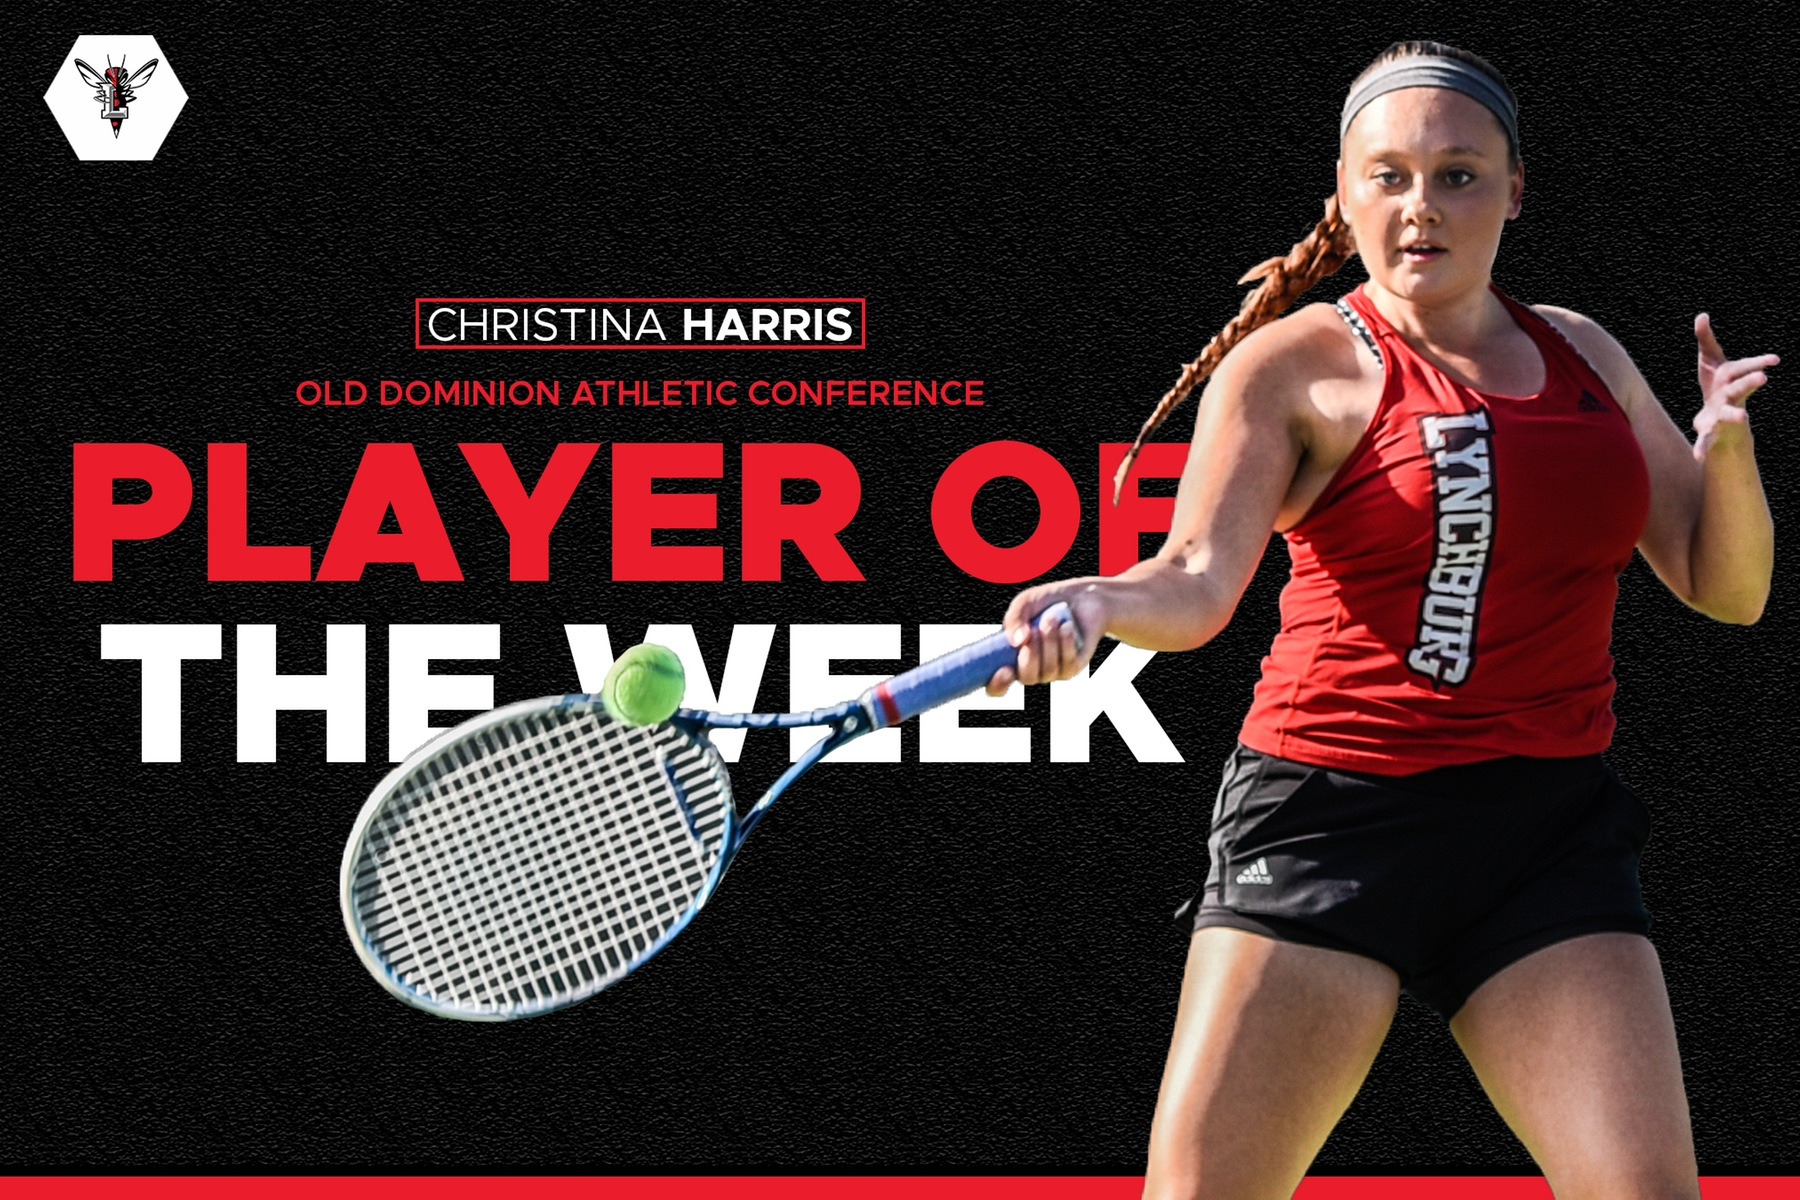 Christina Harris hits a forehand on black background that says player of the week in red and white text